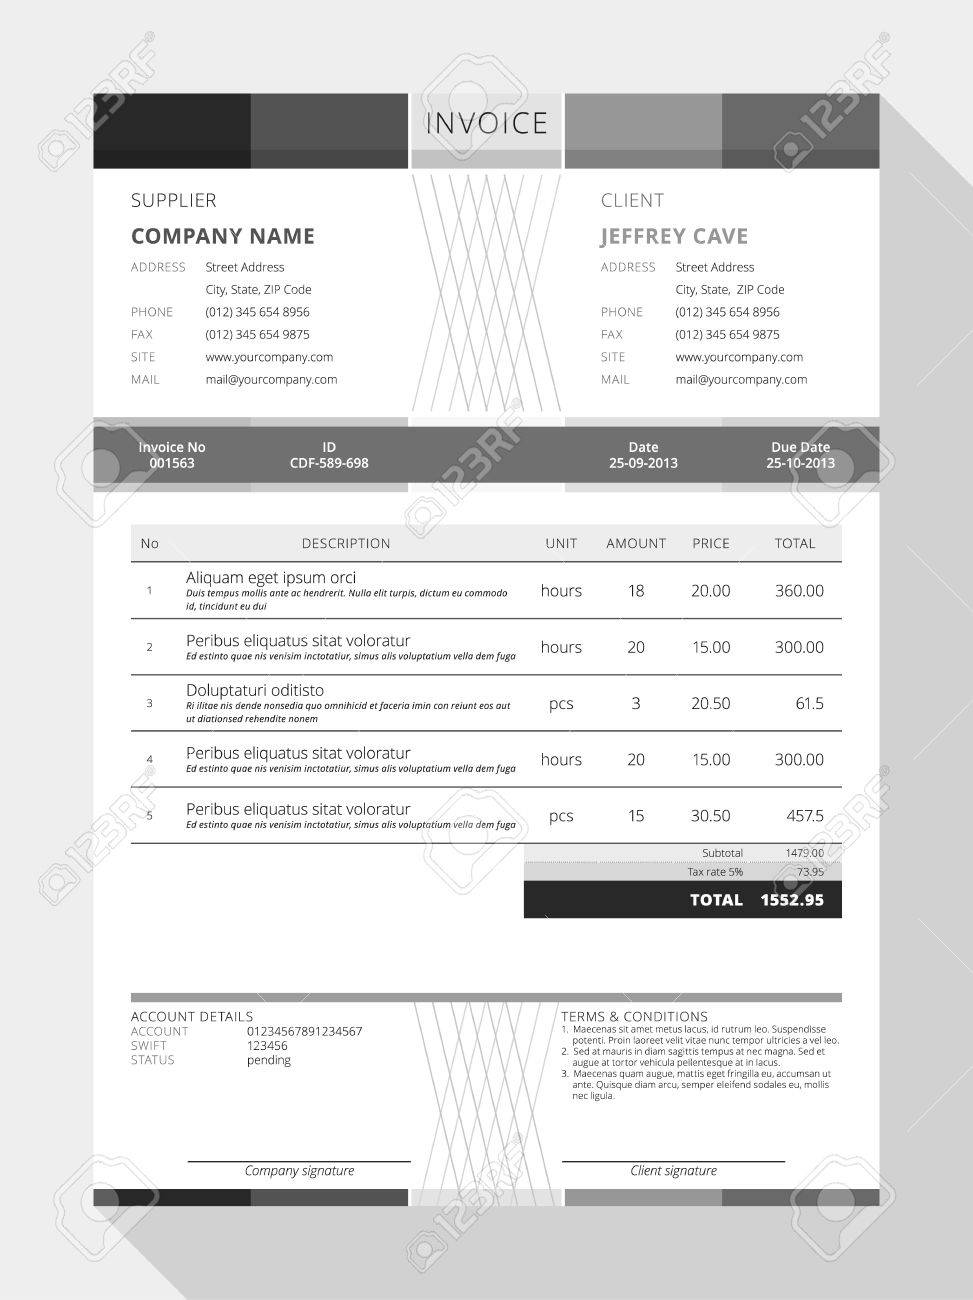 Carsforlessus  Personable Design An Invoice  Professional Graphic Design Invoice  With Great Vector Customizable Invoice Form Template Design Vector   Design An Invoice With Delectable Invoice Free Software Also How To Invoice A Client In Addition Invoice Template Software And Payment Terms On Invoice As Well As Bond Invoice Price Additionally Free Downloadable Invoice From Happytomco With Carsforlessus  Great Design An Invoice  Professional Graphic Design Invoice  With Delectable Vector Customizable Invoice Form Template Design Vector   Design An Invoice And Personable Invoice Free Software Also How To Invoice A Client In Addition Invoice Template Software From Happytomco